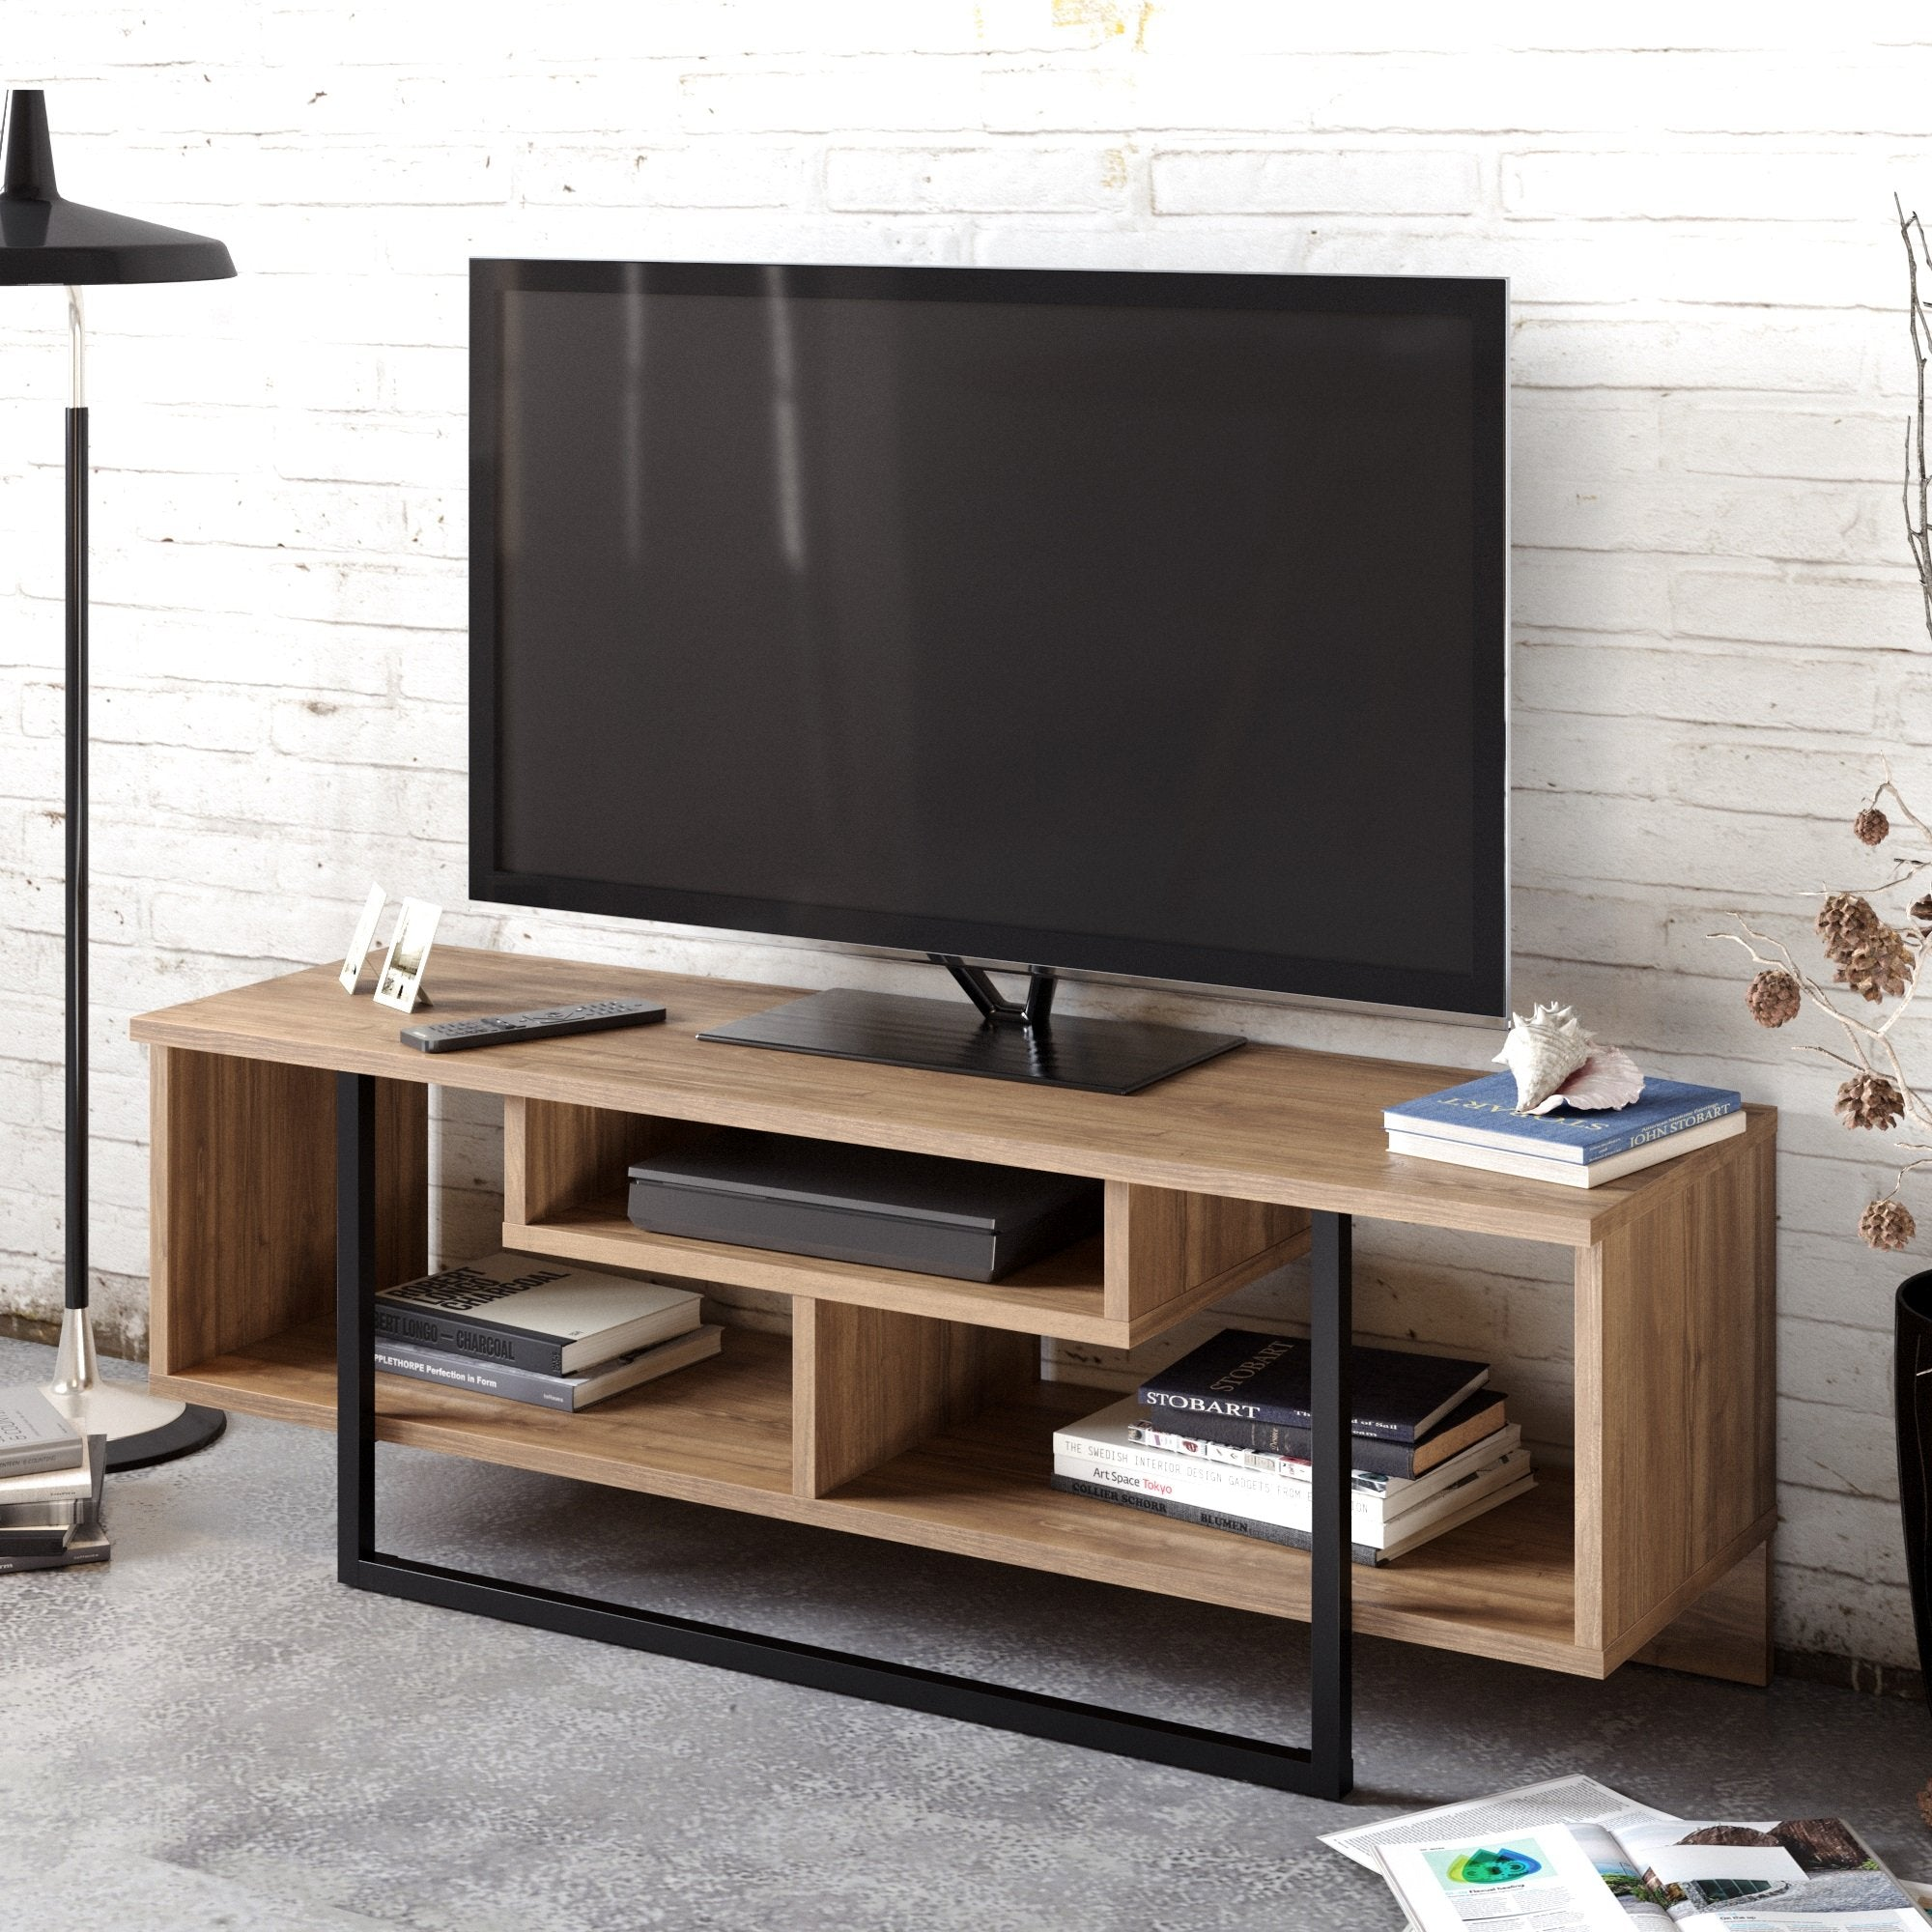 Asal 47'' Wide TV Stand & Media Console for TVs up to 55